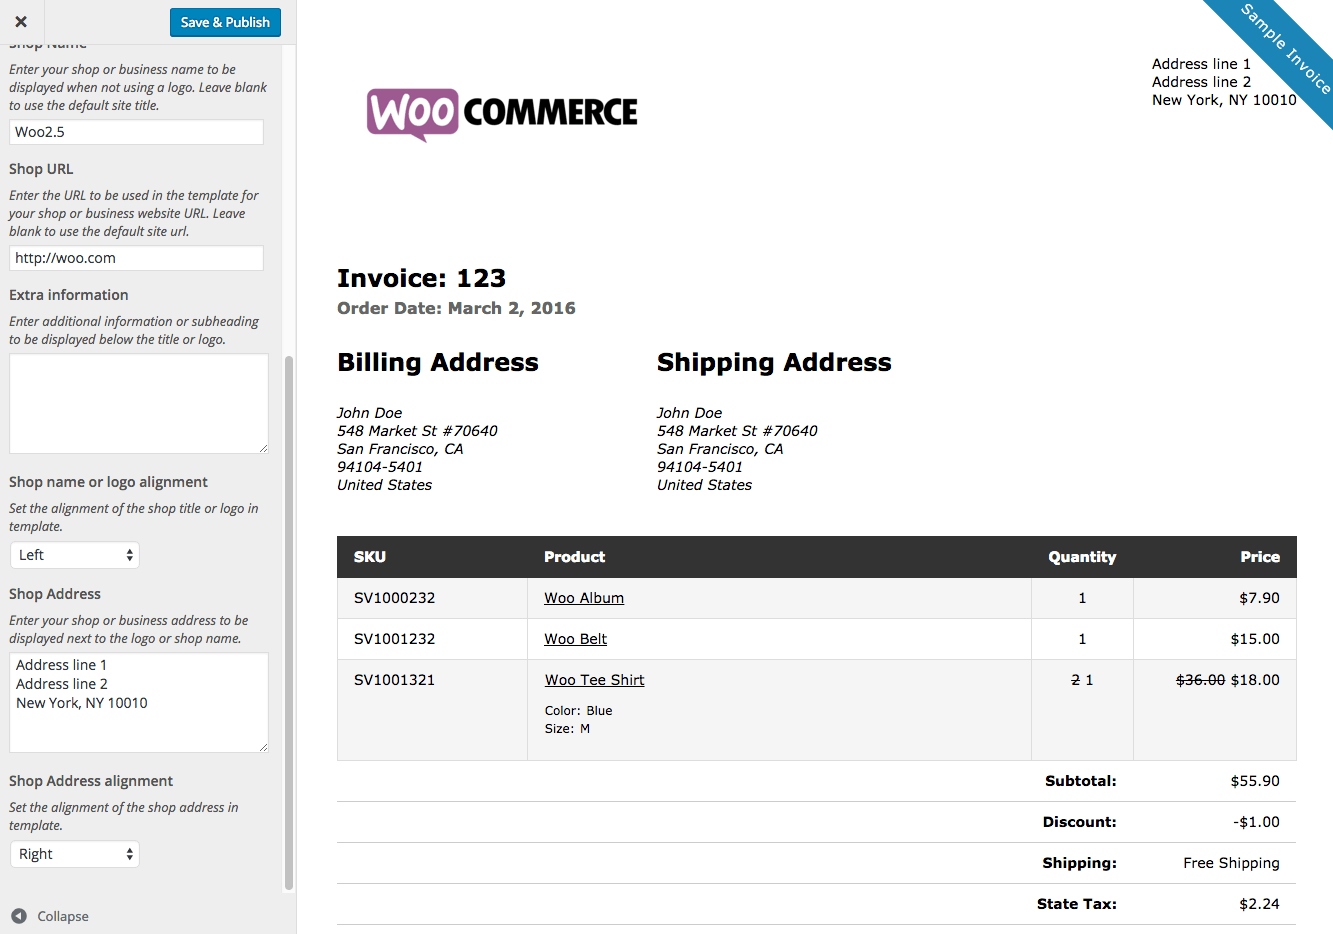 Helpingtohealus  Marvellous Woocommerce Print Invoices Amp Packing Lists  Woocommerce Docs With Inspiring Woocommerce Print Invoices  Packing Lists Customizer With Adorable Bed Bath And Beyond Return Without Receipt Also Uscis Receipt Number Status In Addition Check Receipt Template And Nordstrom Rack Return Policy No Receipt As Well As Where Can I Buy A Receipt Book Additionally Avis Toll Receipts From Docswoocommercecom With Helpingtohealus  Inspiring Woocommerce Print Invoices Amp Packing Lists  Woocommerce Docs With Adorable Woocommerce Print Invoices  Packing Lists Customizer And Marvellous Bed Bath And Beyond Return Without Receipt Also Uscis Receipt Number Status In Addition Check Receipt Template From Docswoocommercecom